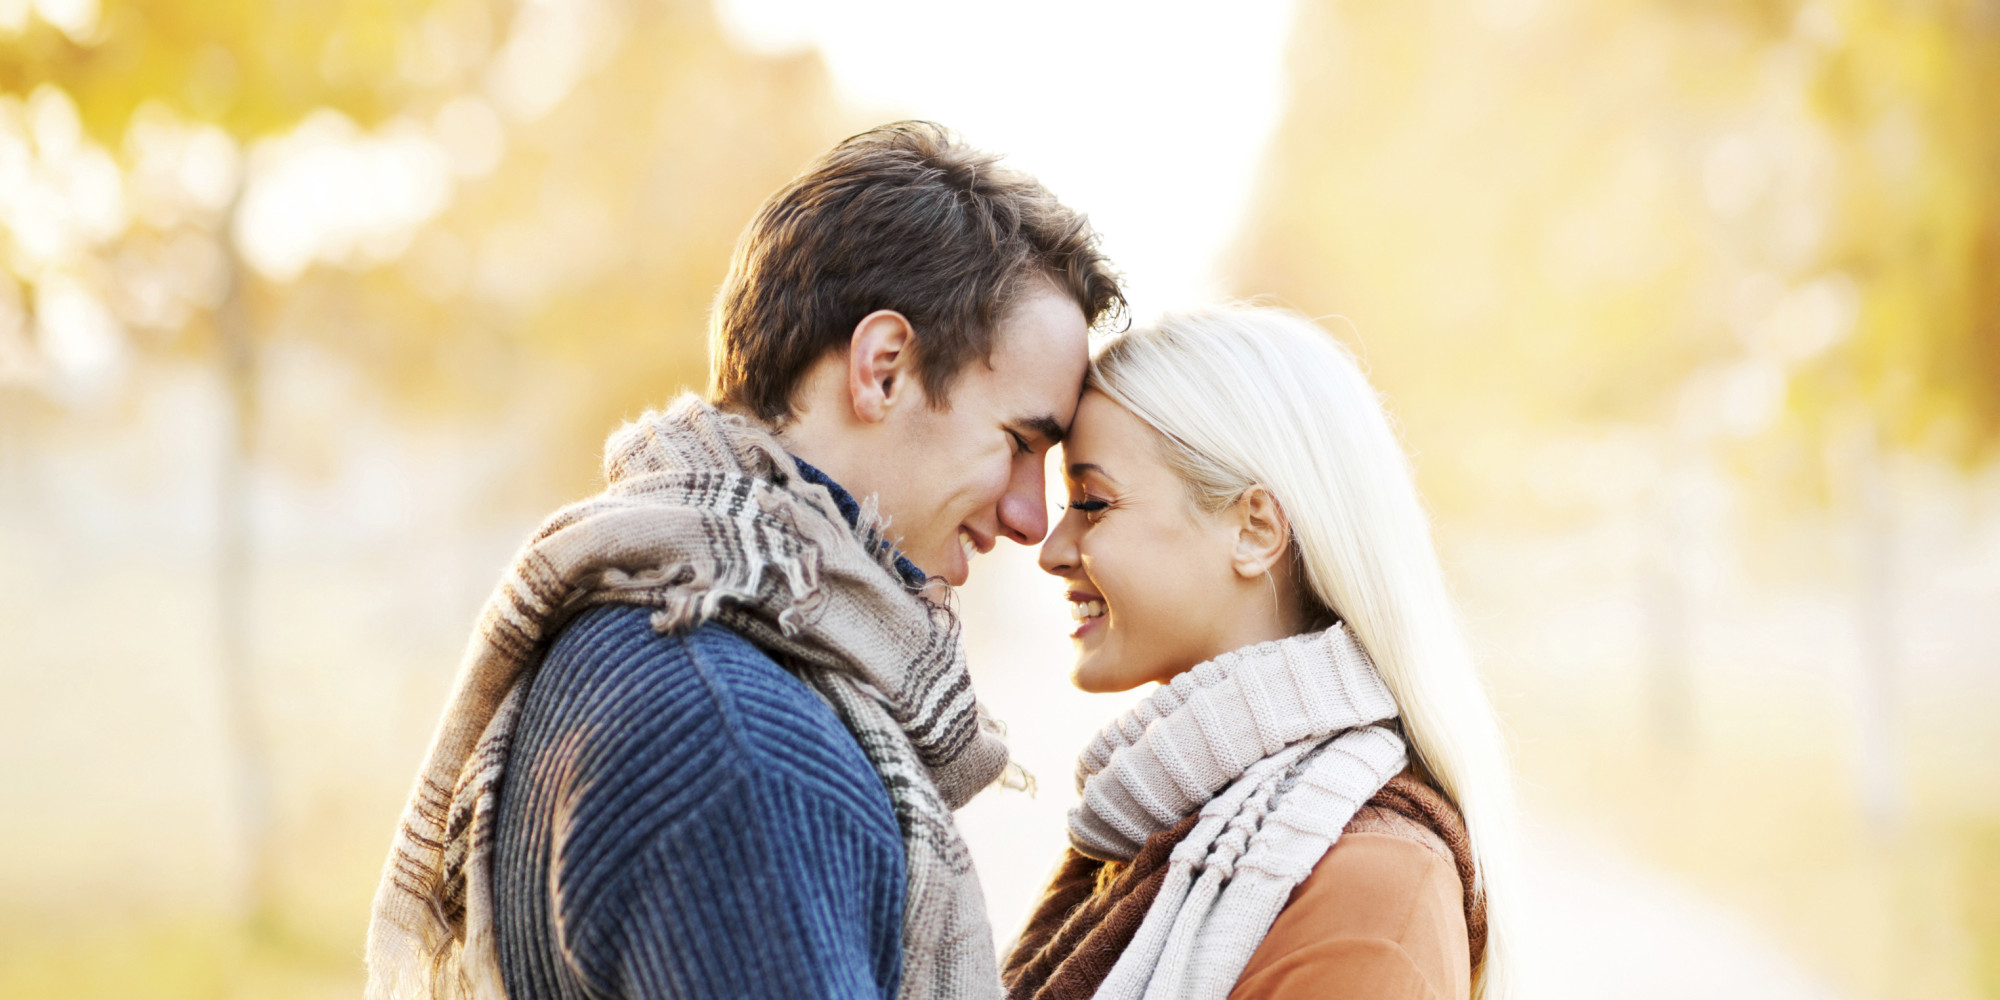 A Girl Proposing A Boy Wallpaper 10 Differences Between Finding Love In A Romance Novel And